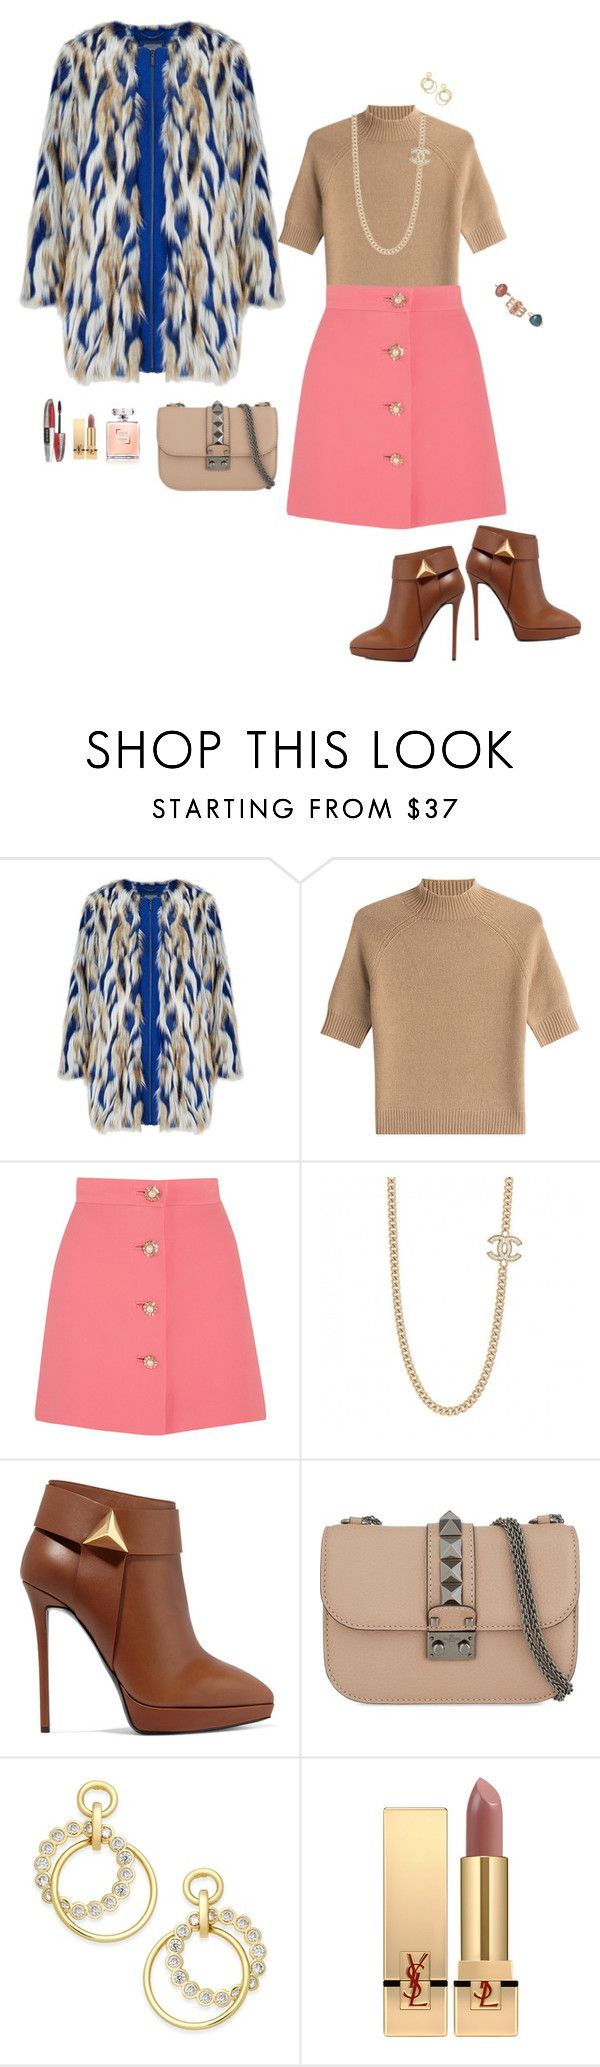 """""""Dos focos de color."""" by srtagraham ❤ liked on Polyvore featuring Theory, Miu Miu, Giuseppe Zanotti, Valentino, Kate Spade, Yves Saint Laurent and L'Oréal Paris"""